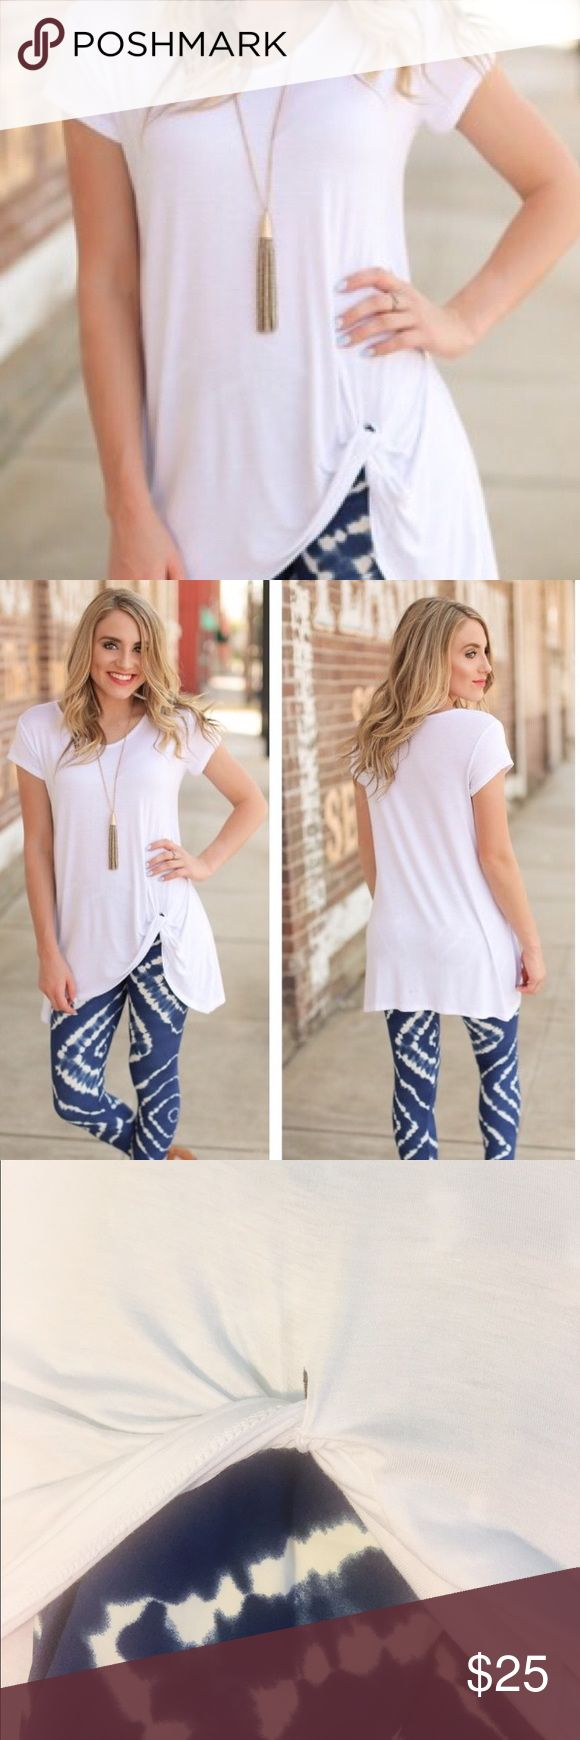 """White knot tunic, medium This simple, comfy, loose fitting white tunic is so soft you may want to sleep in it! Fabric: 95%rayon/5%spandex (Small size is for sale in separate listing. Tie die leggings are also sold in a separate listing!)  Chest: 19"""" Length: 31"""" Infinity Raine Tops Tunics"""